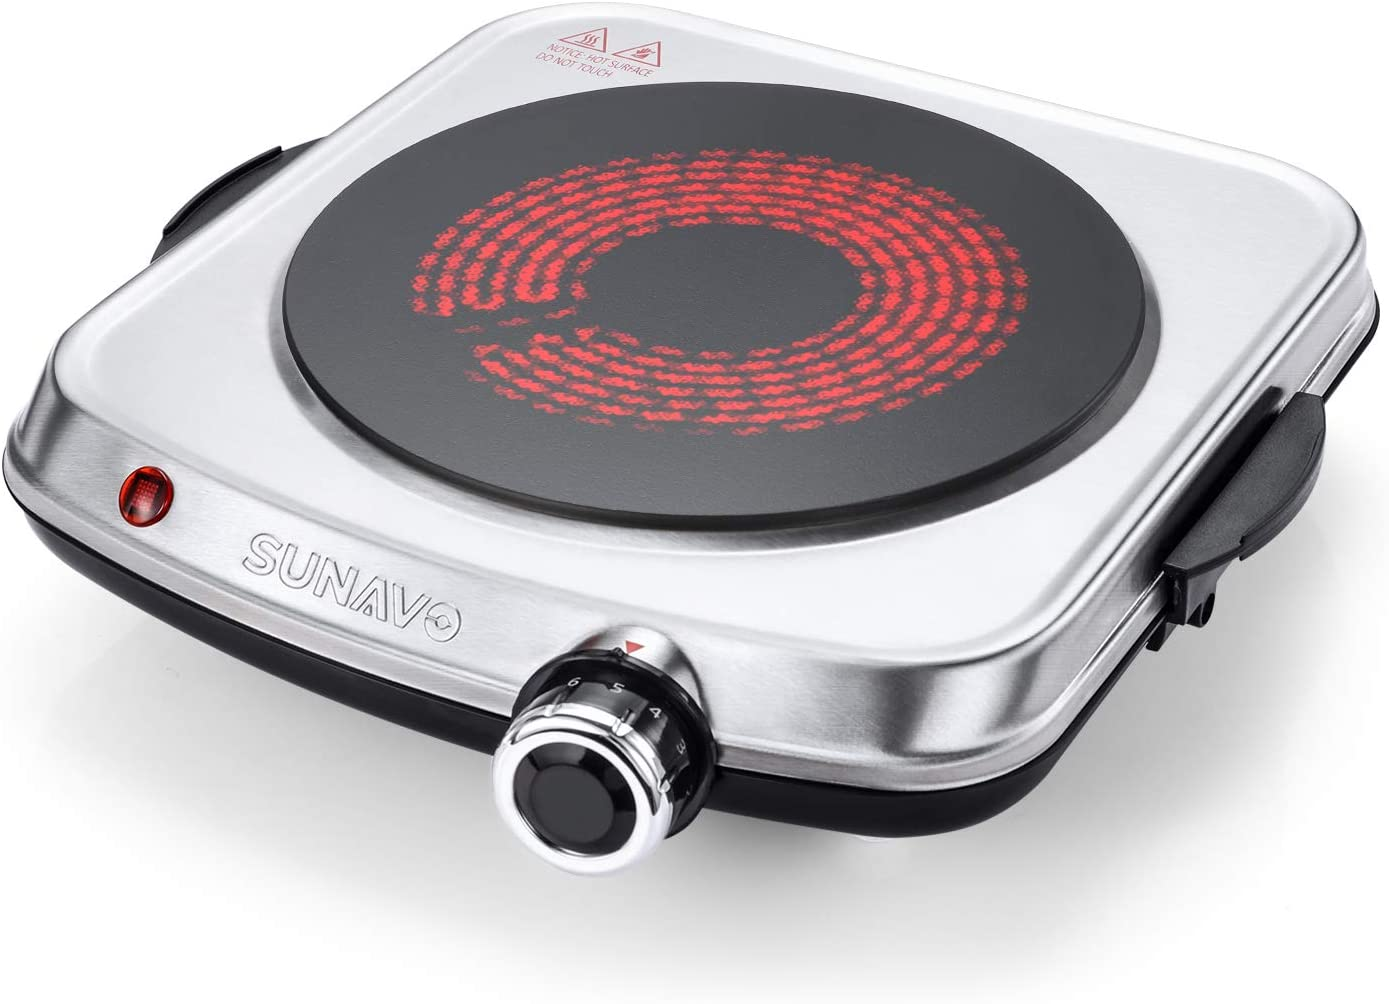 SUNAVO Electric Infrared Burner, 1200W Ceramic Glass Hot Plate, 6 Power Levels Stainless Steel Single Burner for Kitchen Camping RV and More